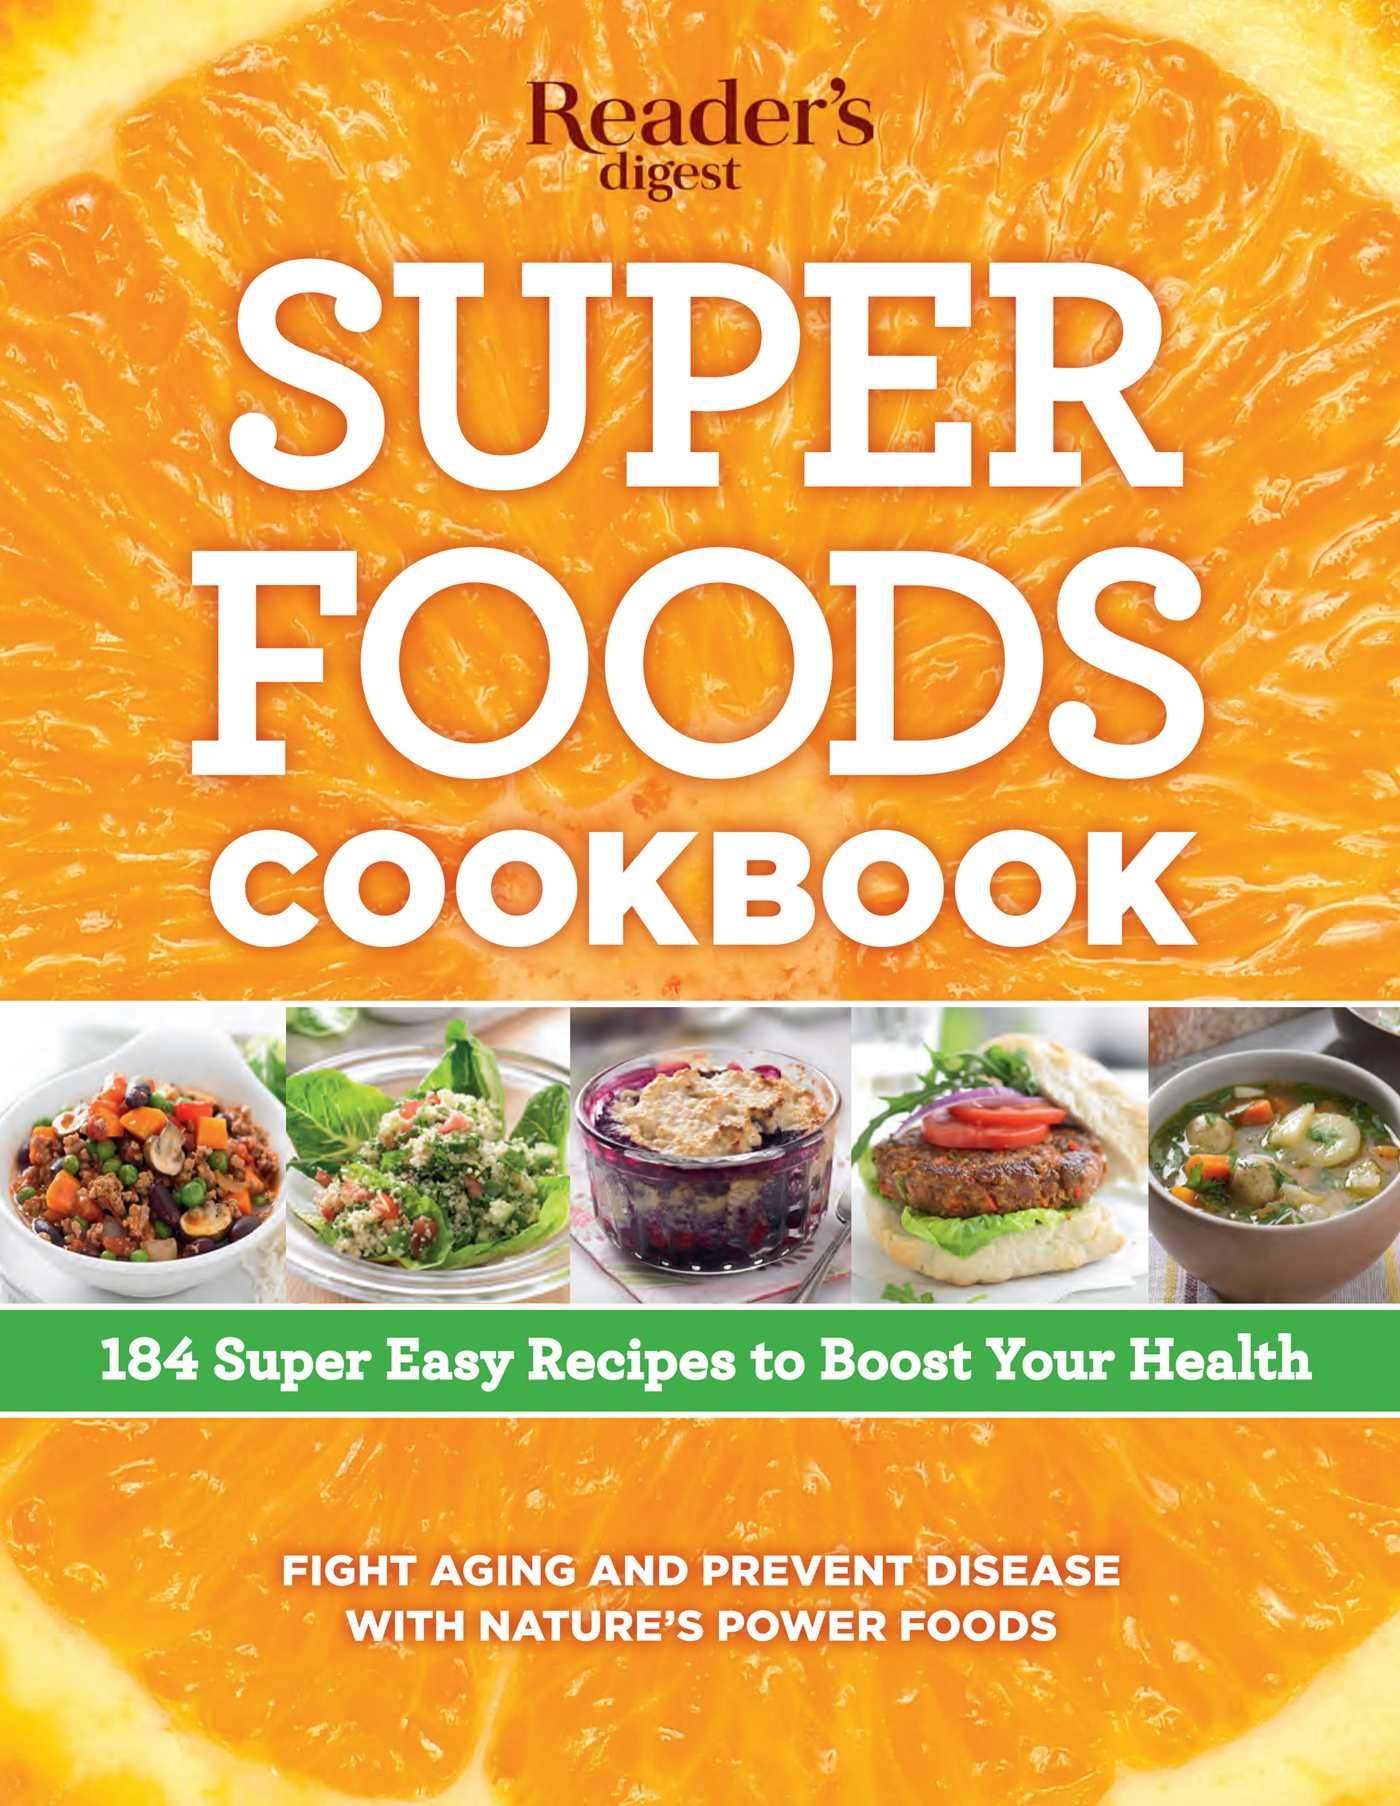 Super foods cookbook 9781621451983 hr